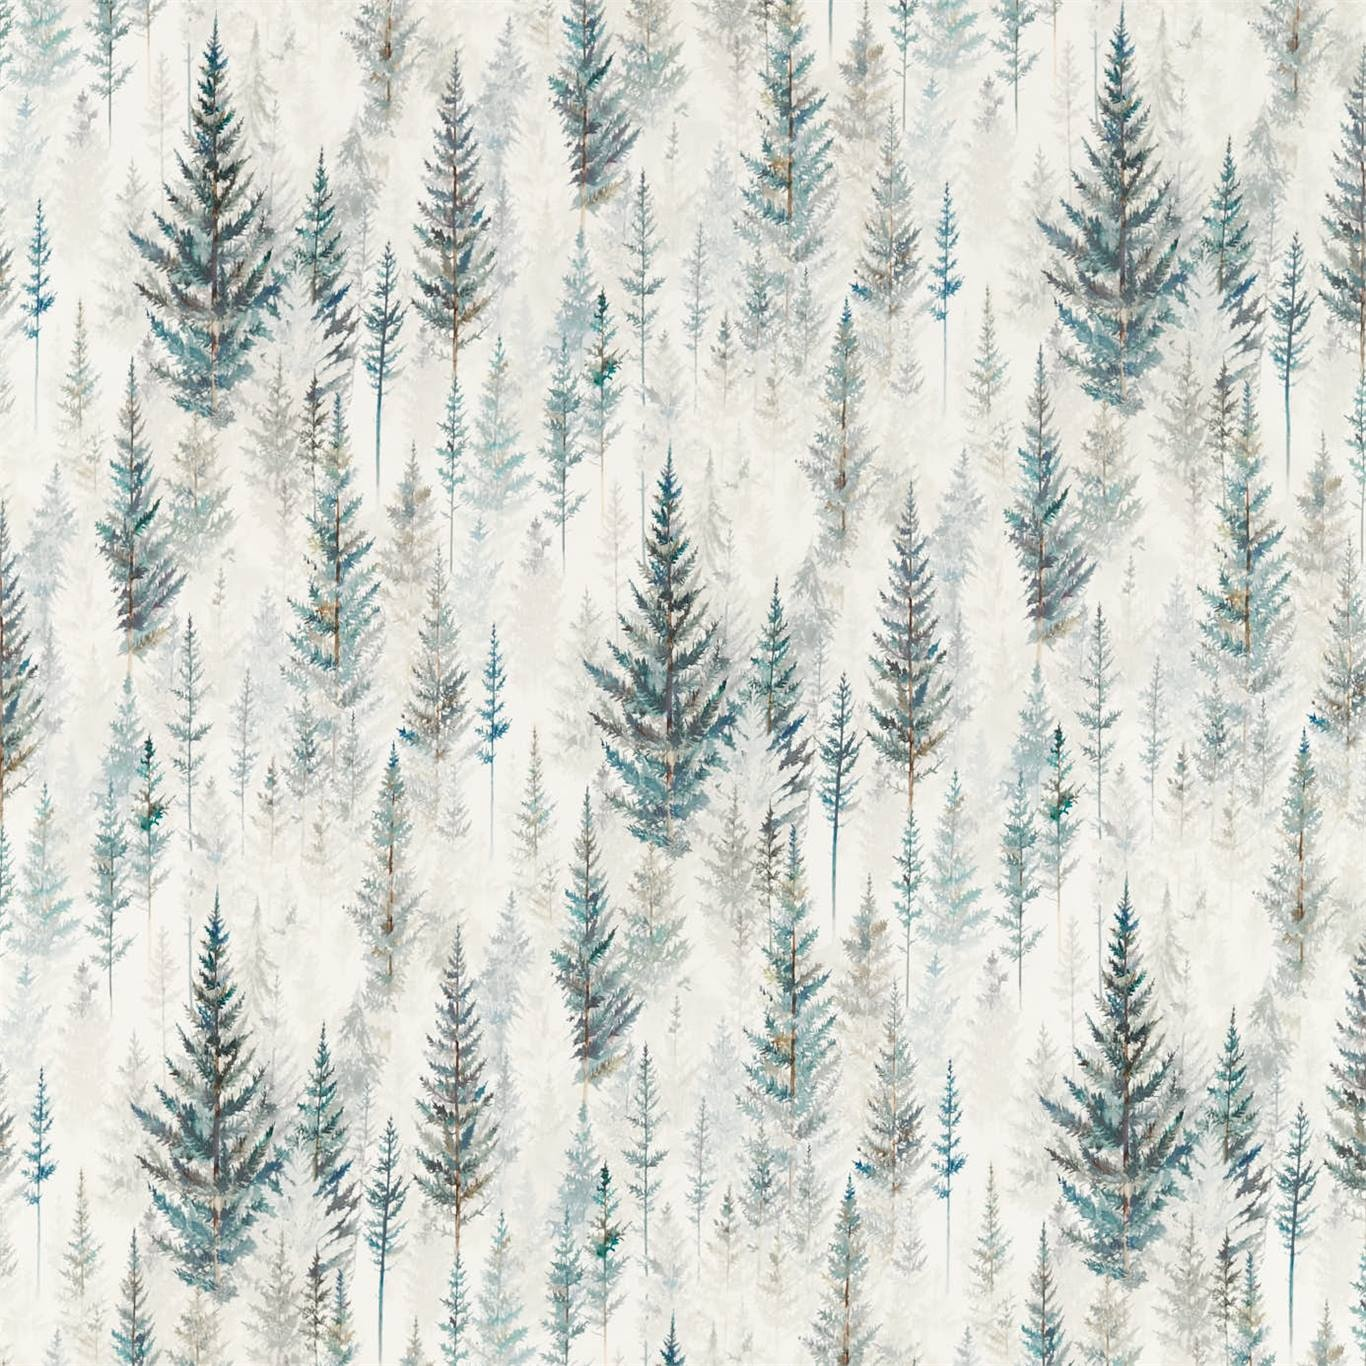 Image of Sanderson Juniper Pine Forest Curtain Fabric 226534